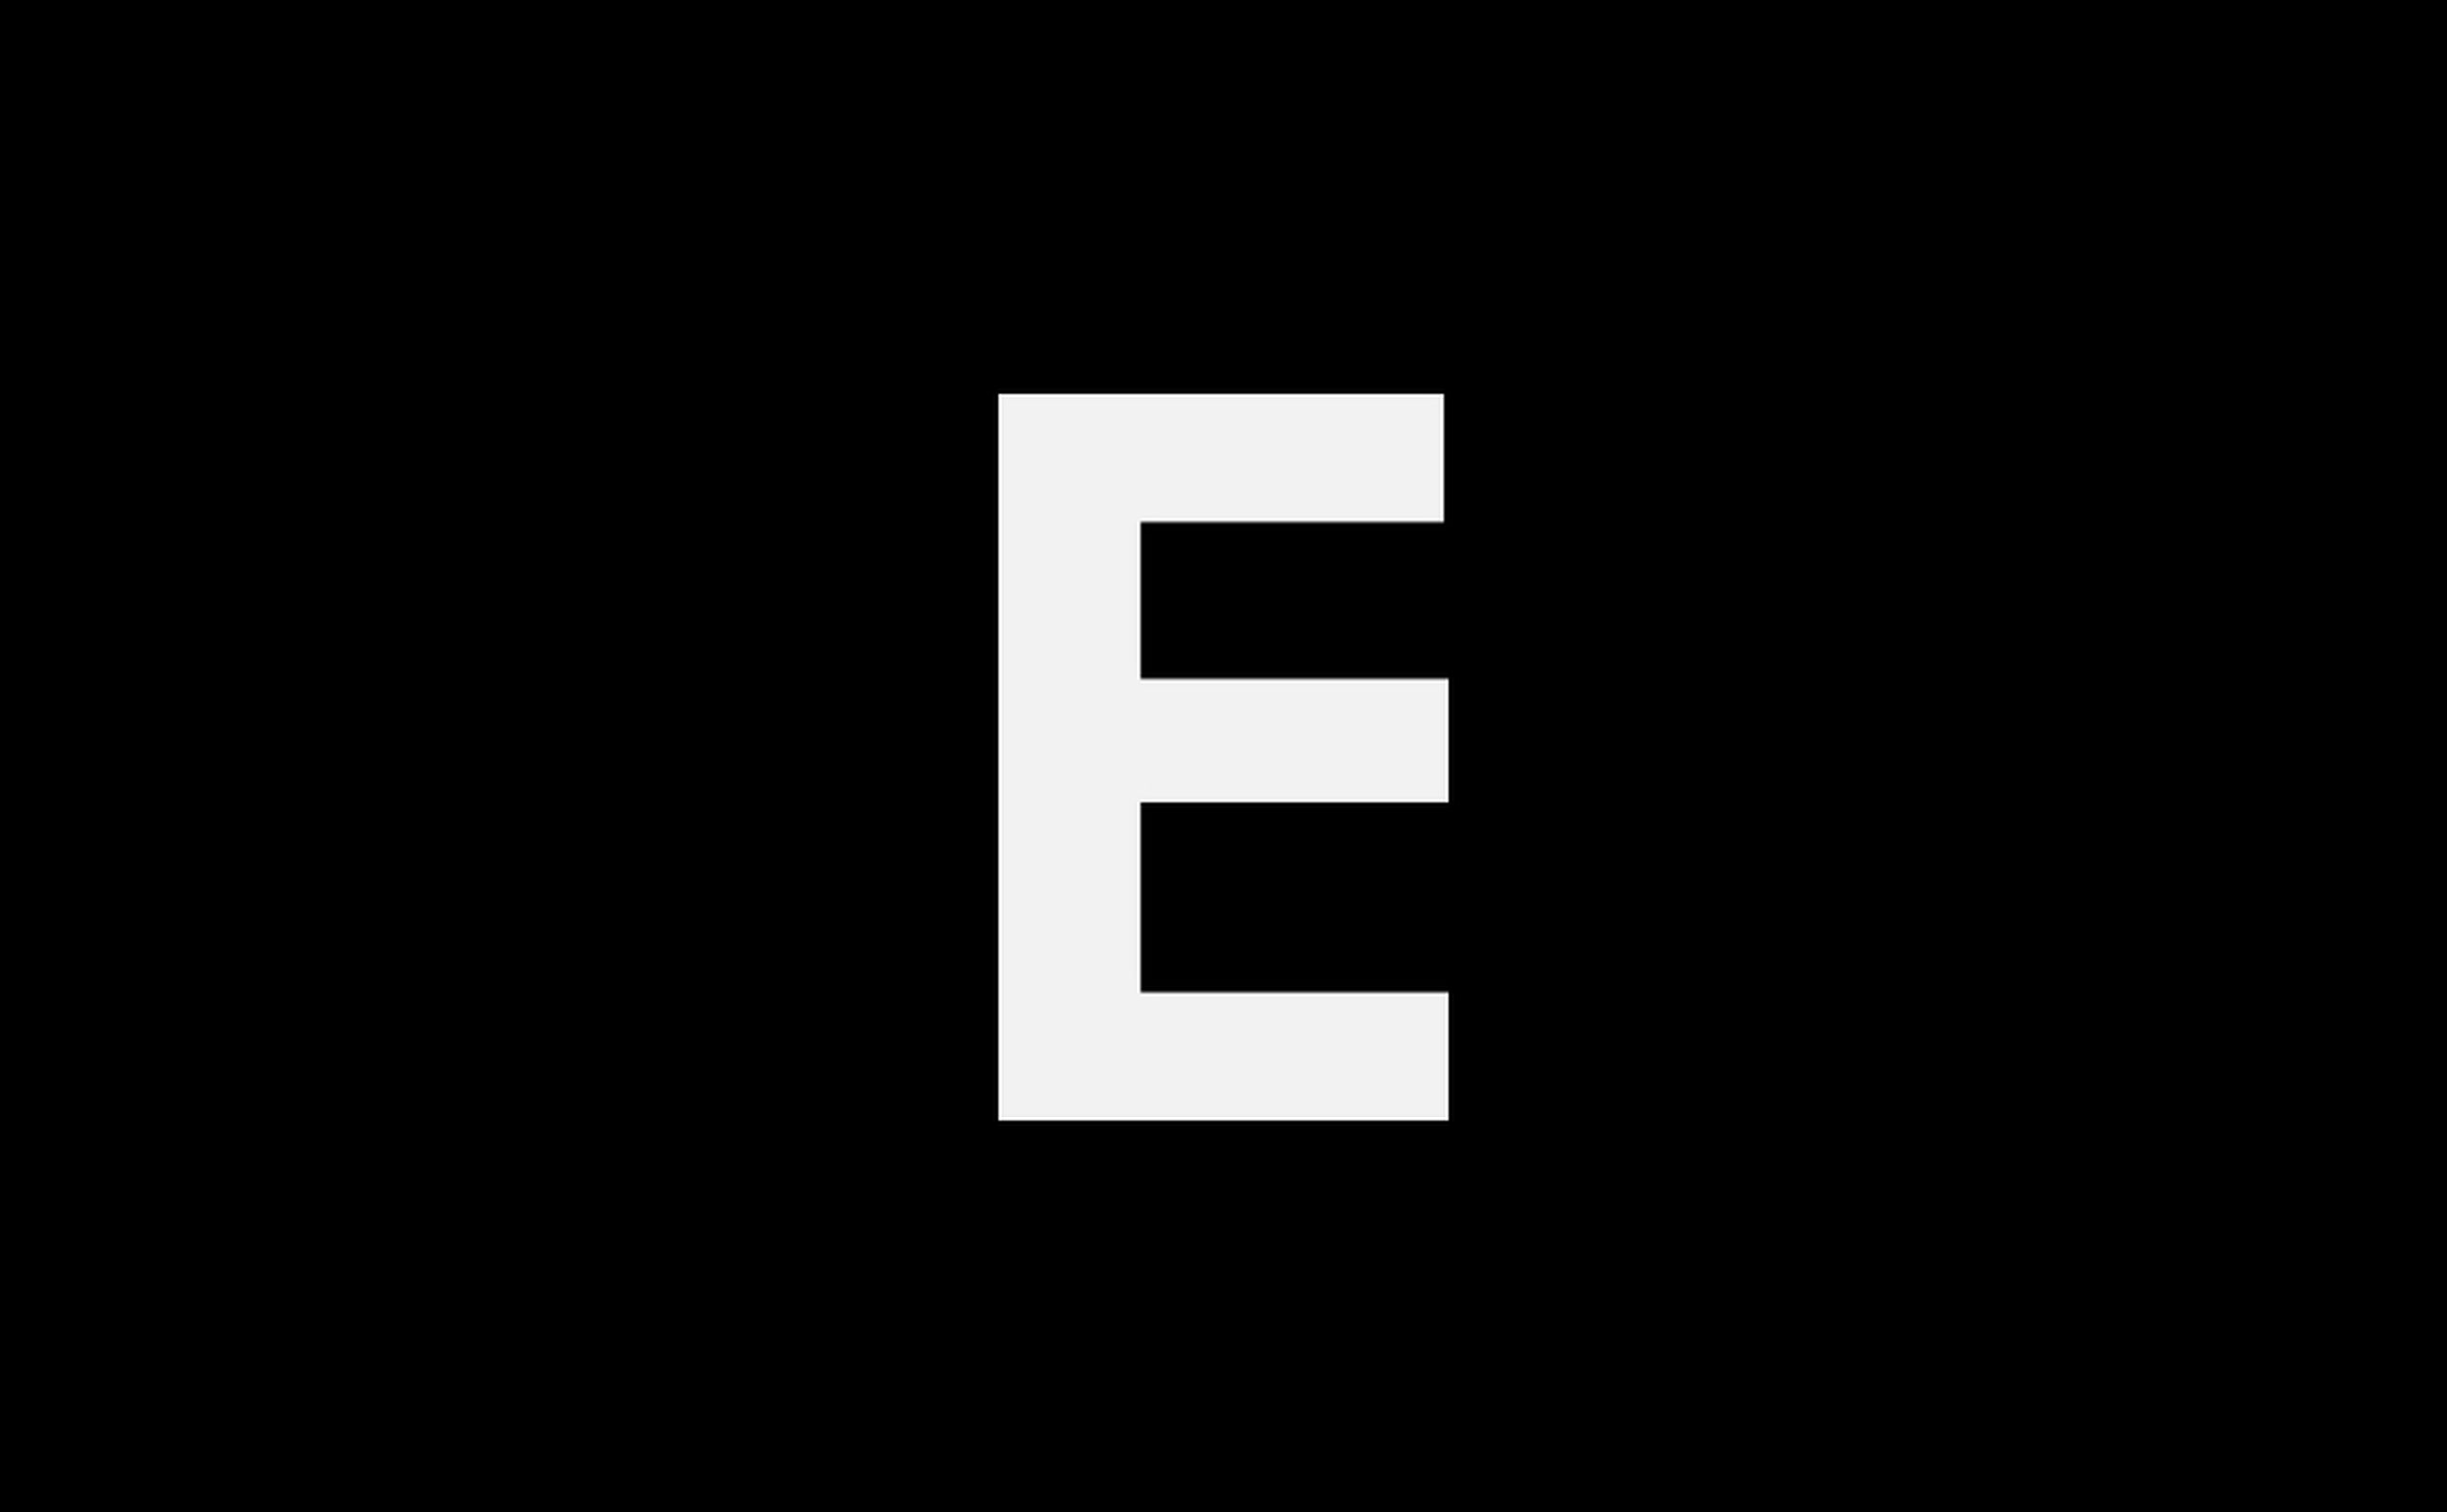 CITY STREET AMIDST BUILDINGS AT NIGHT